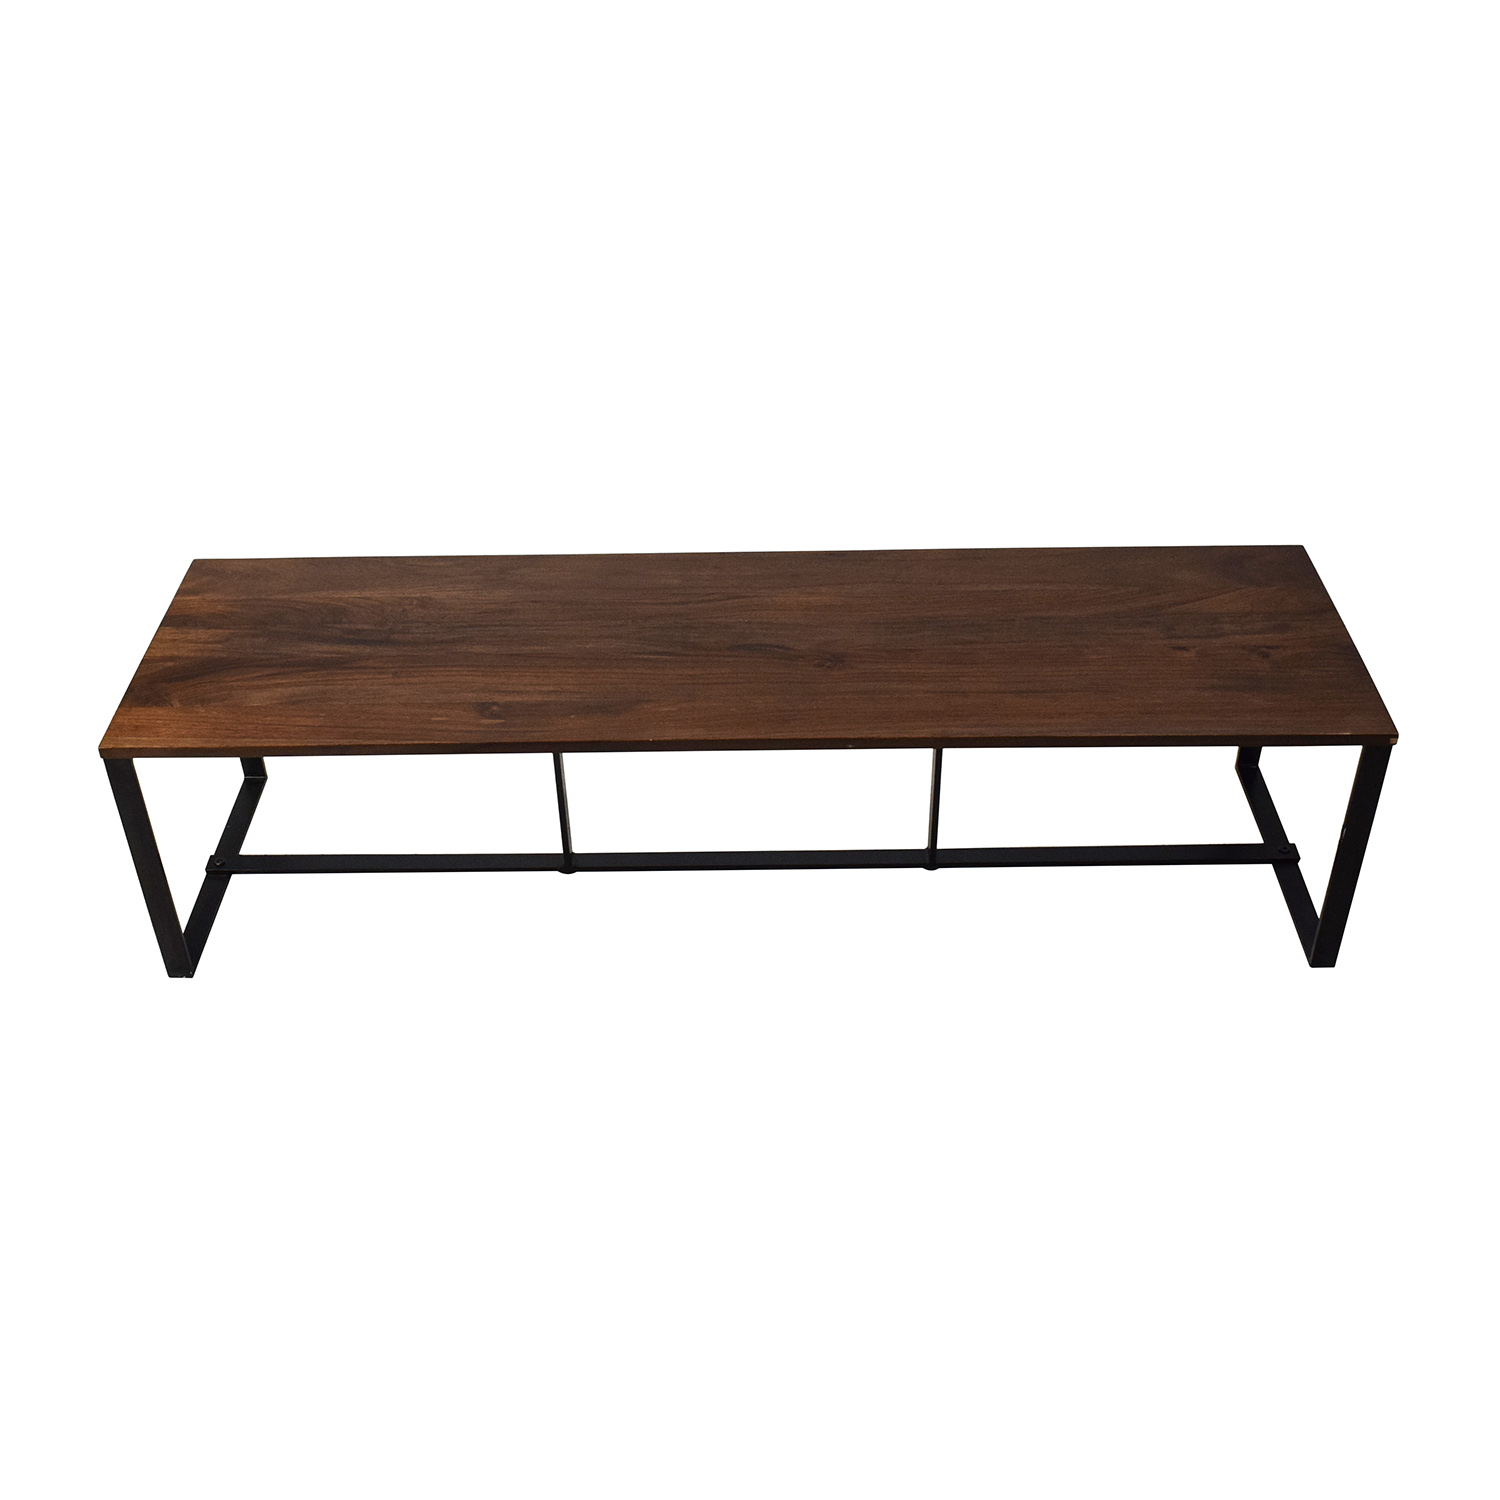 77 OFF CB2 CB2 Coffee Table Tables